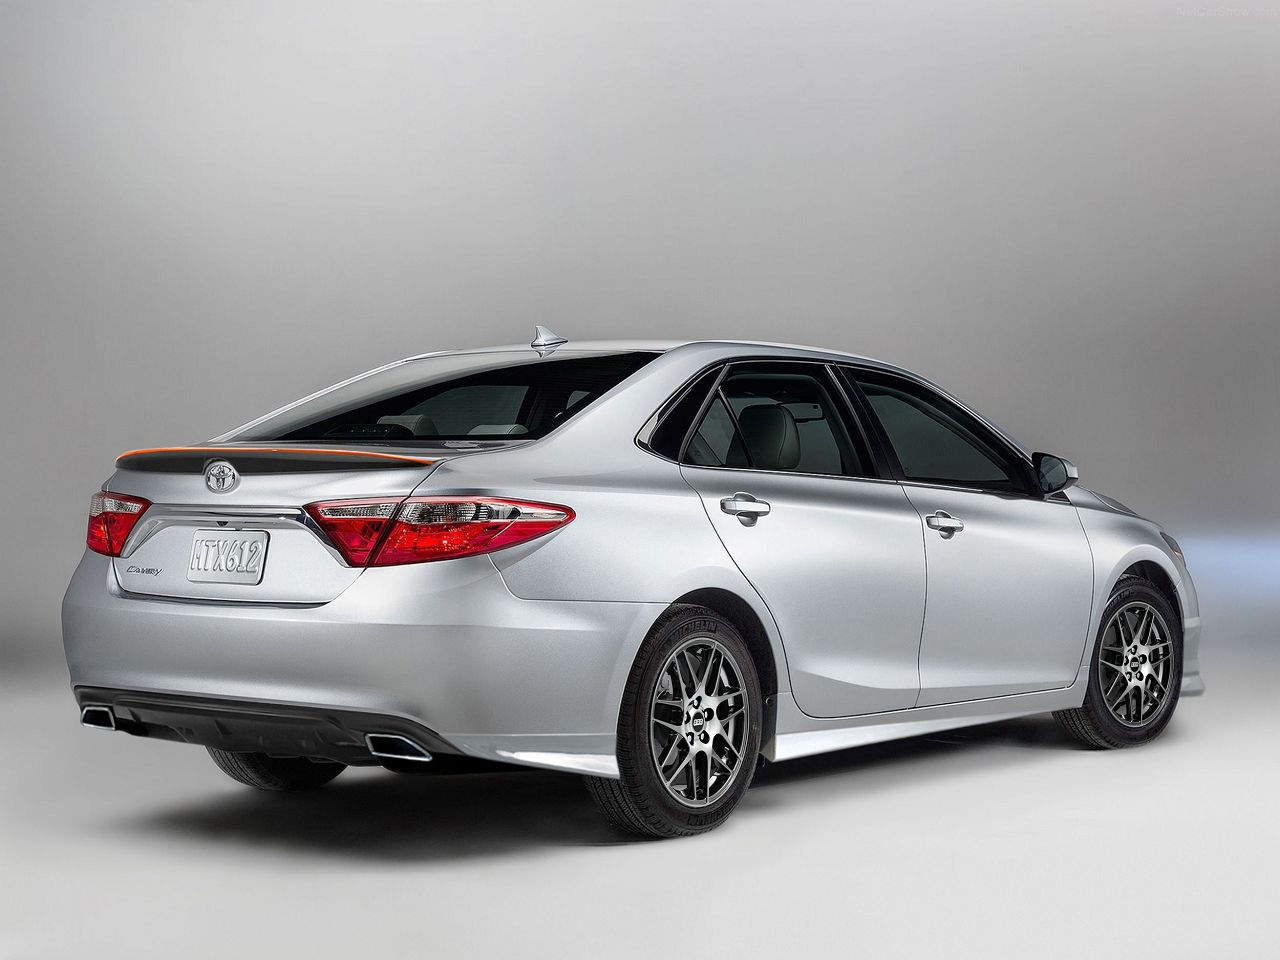 camry-back-antracite.jpg